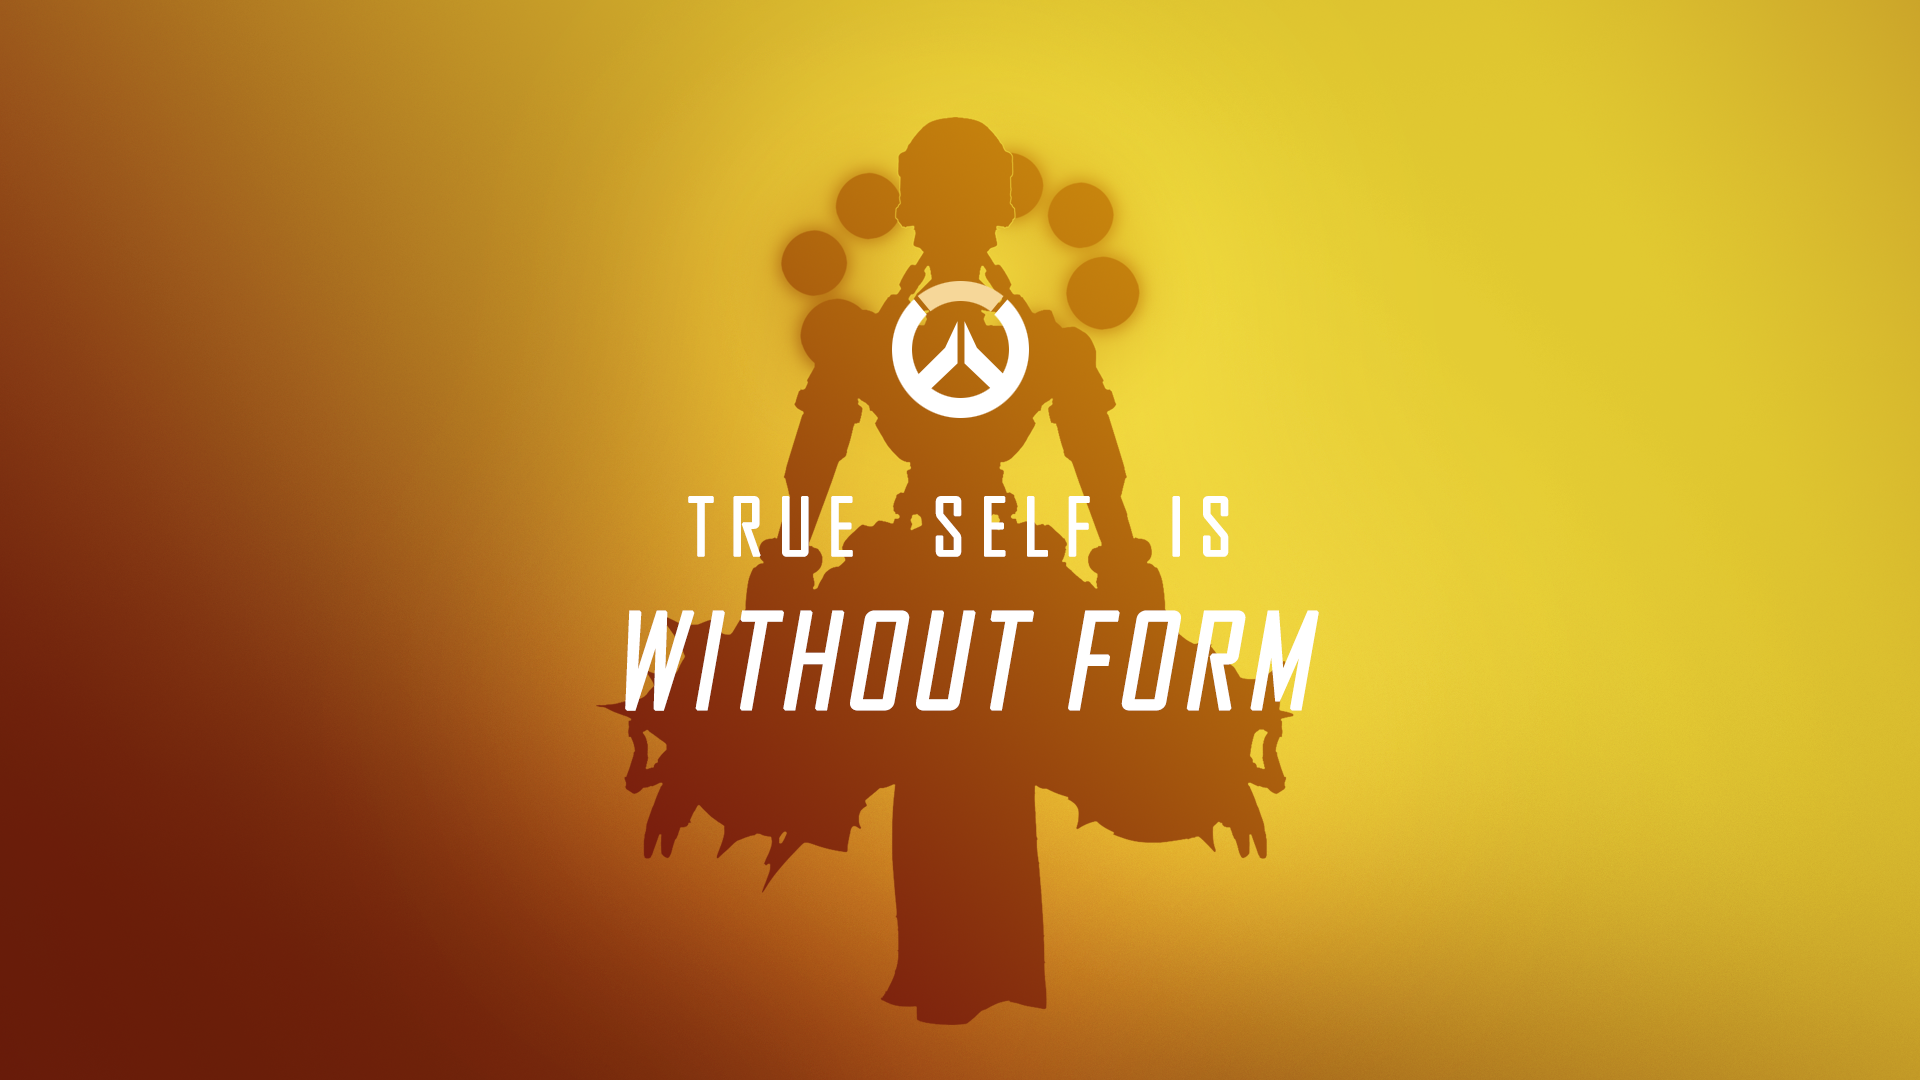 Zenyatta Minimalist  Overwatch By 121ngocson1995 On